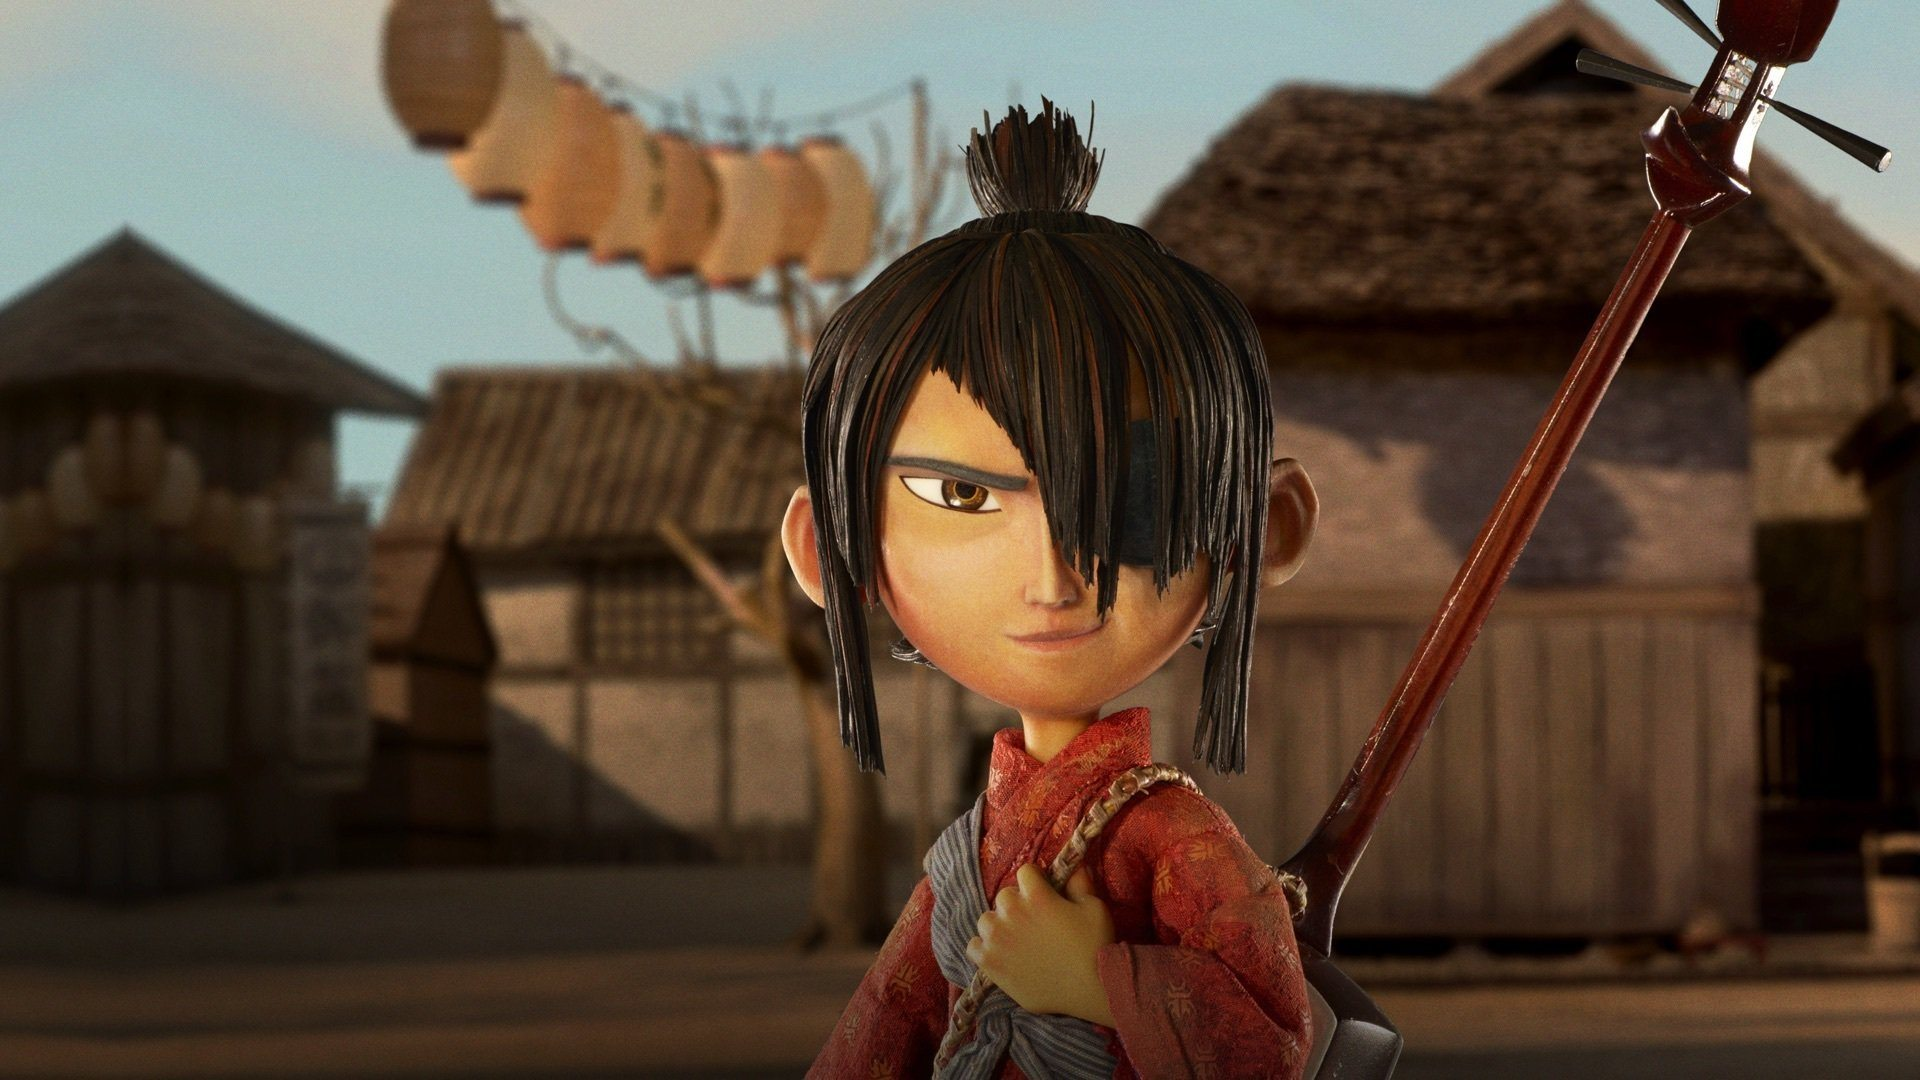 Review: 'Kubo and the Two Strings' Is a Leap Forward for Stop-Motion Animation